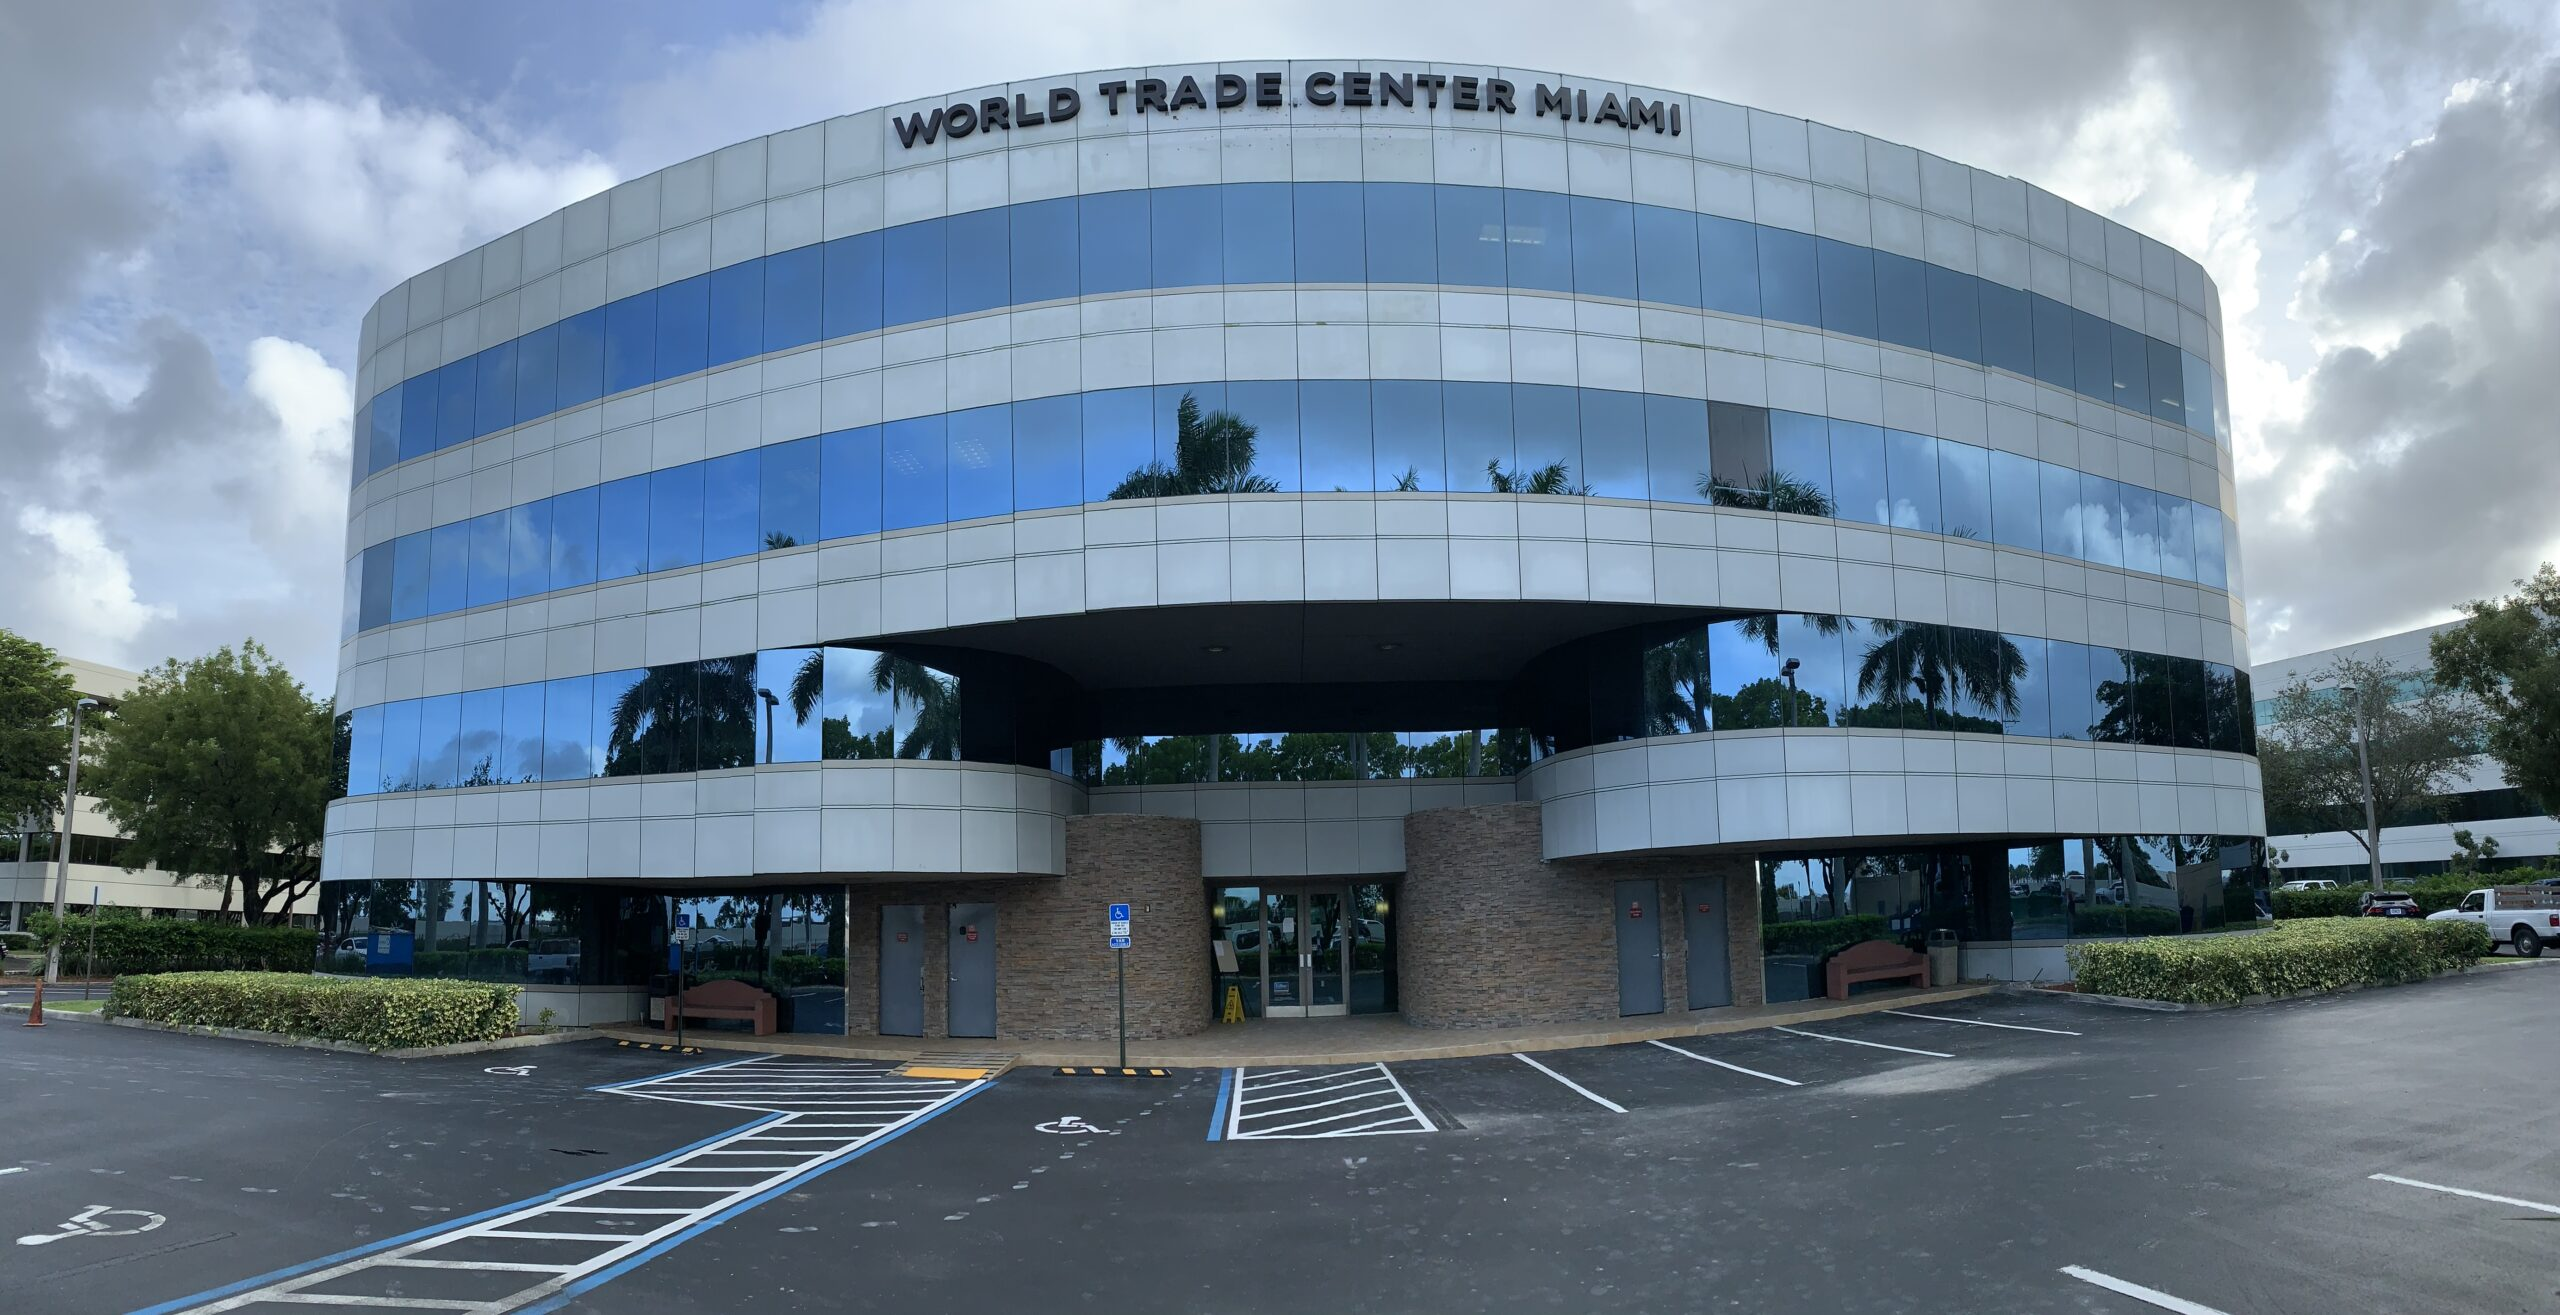 world trade center miami